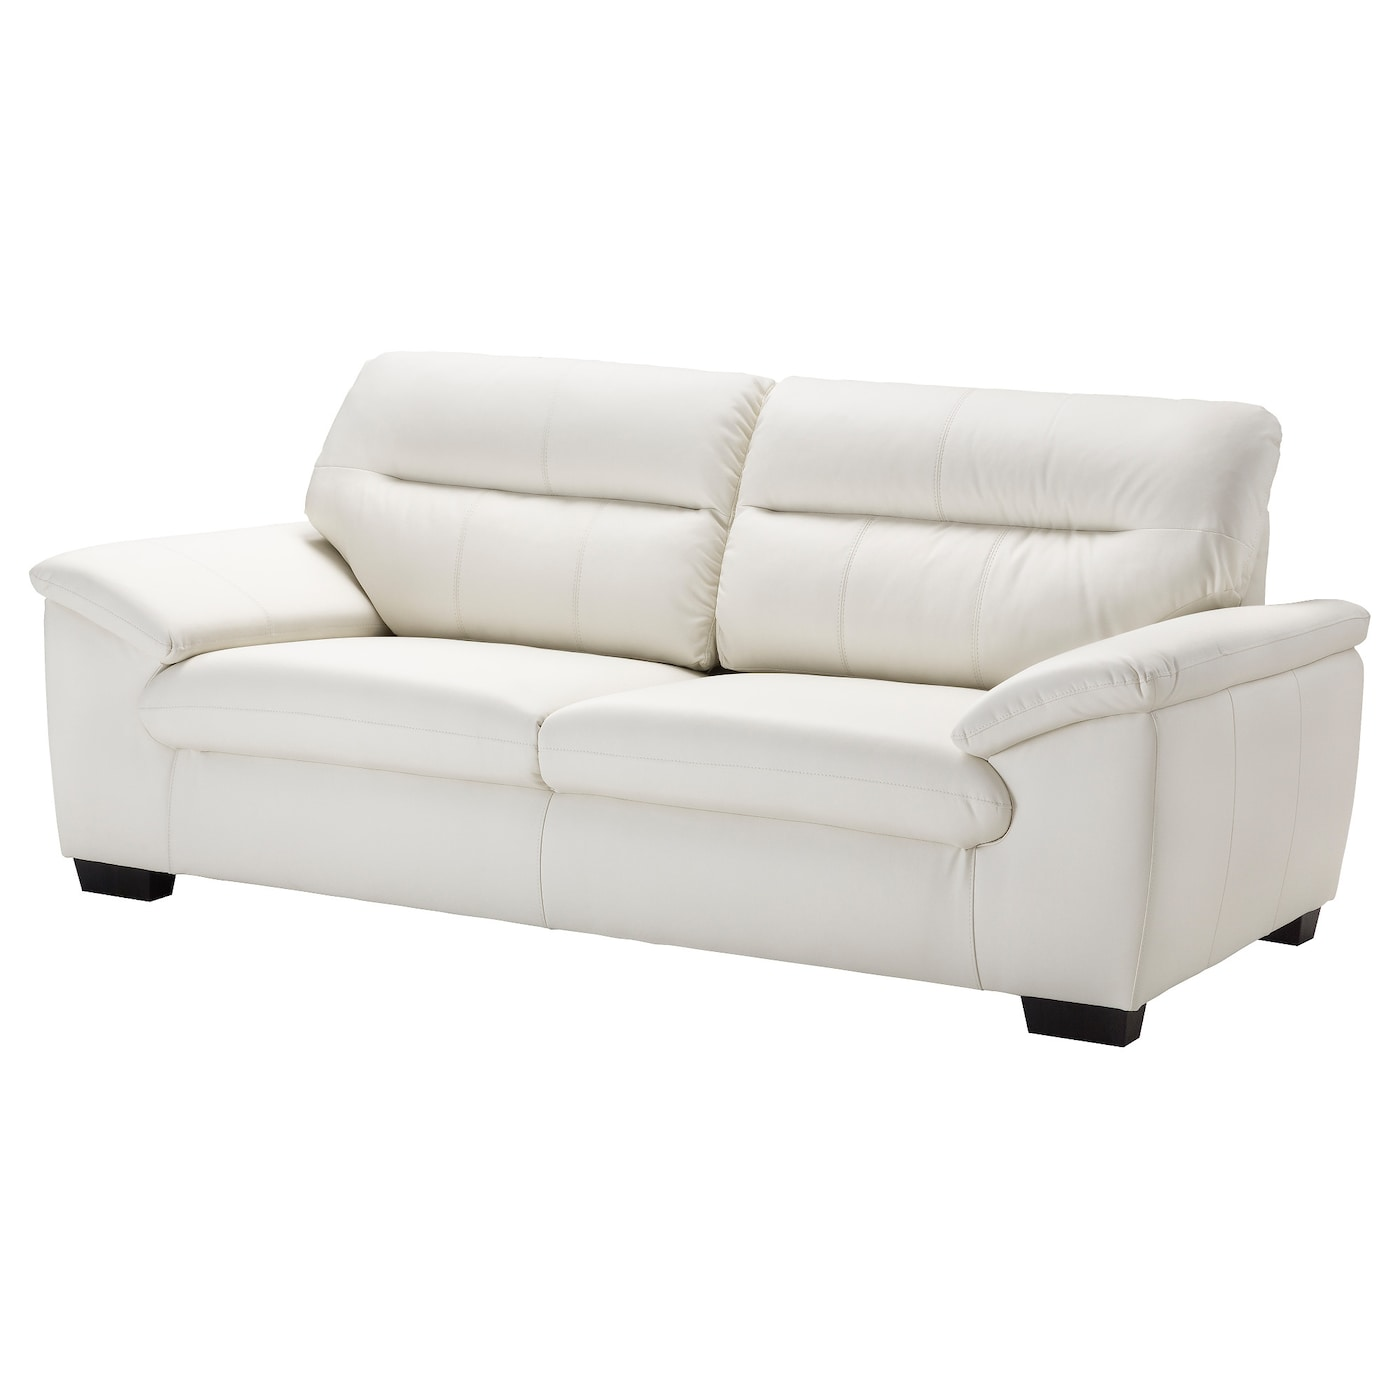 IKEA MALVIKEN 3-seat sofa Durable coated fabric that has the same look and feel as leather.